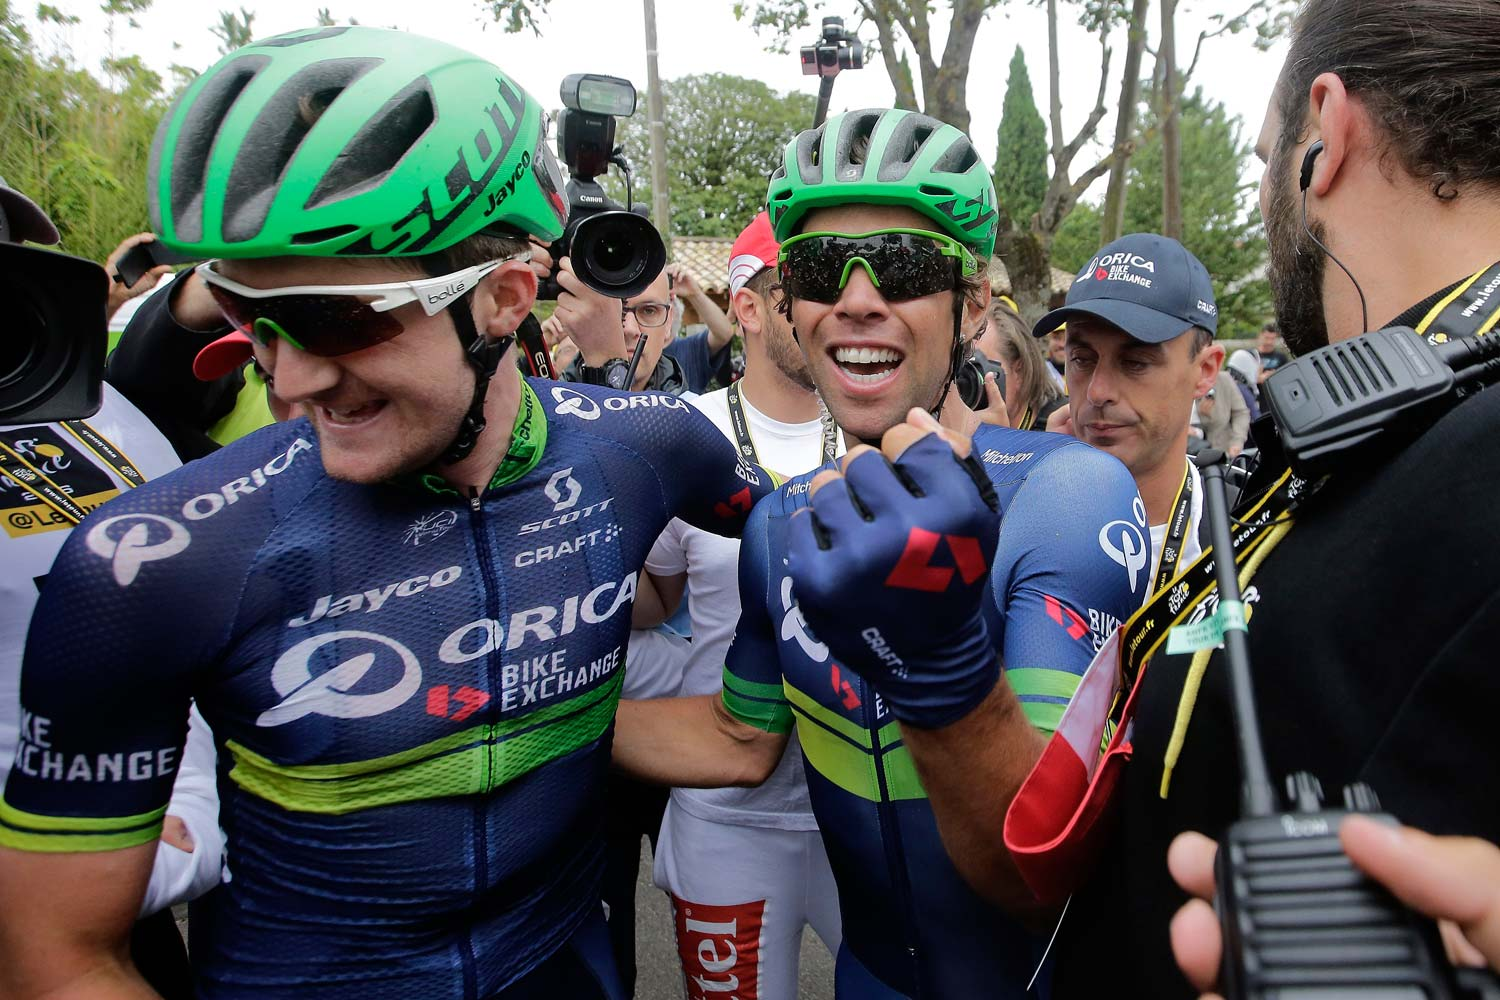 Luke Durbridge played a key role in earning the Orica-BikeExchange its first stage win in the Tour since 2013. Photo: Graham Watson